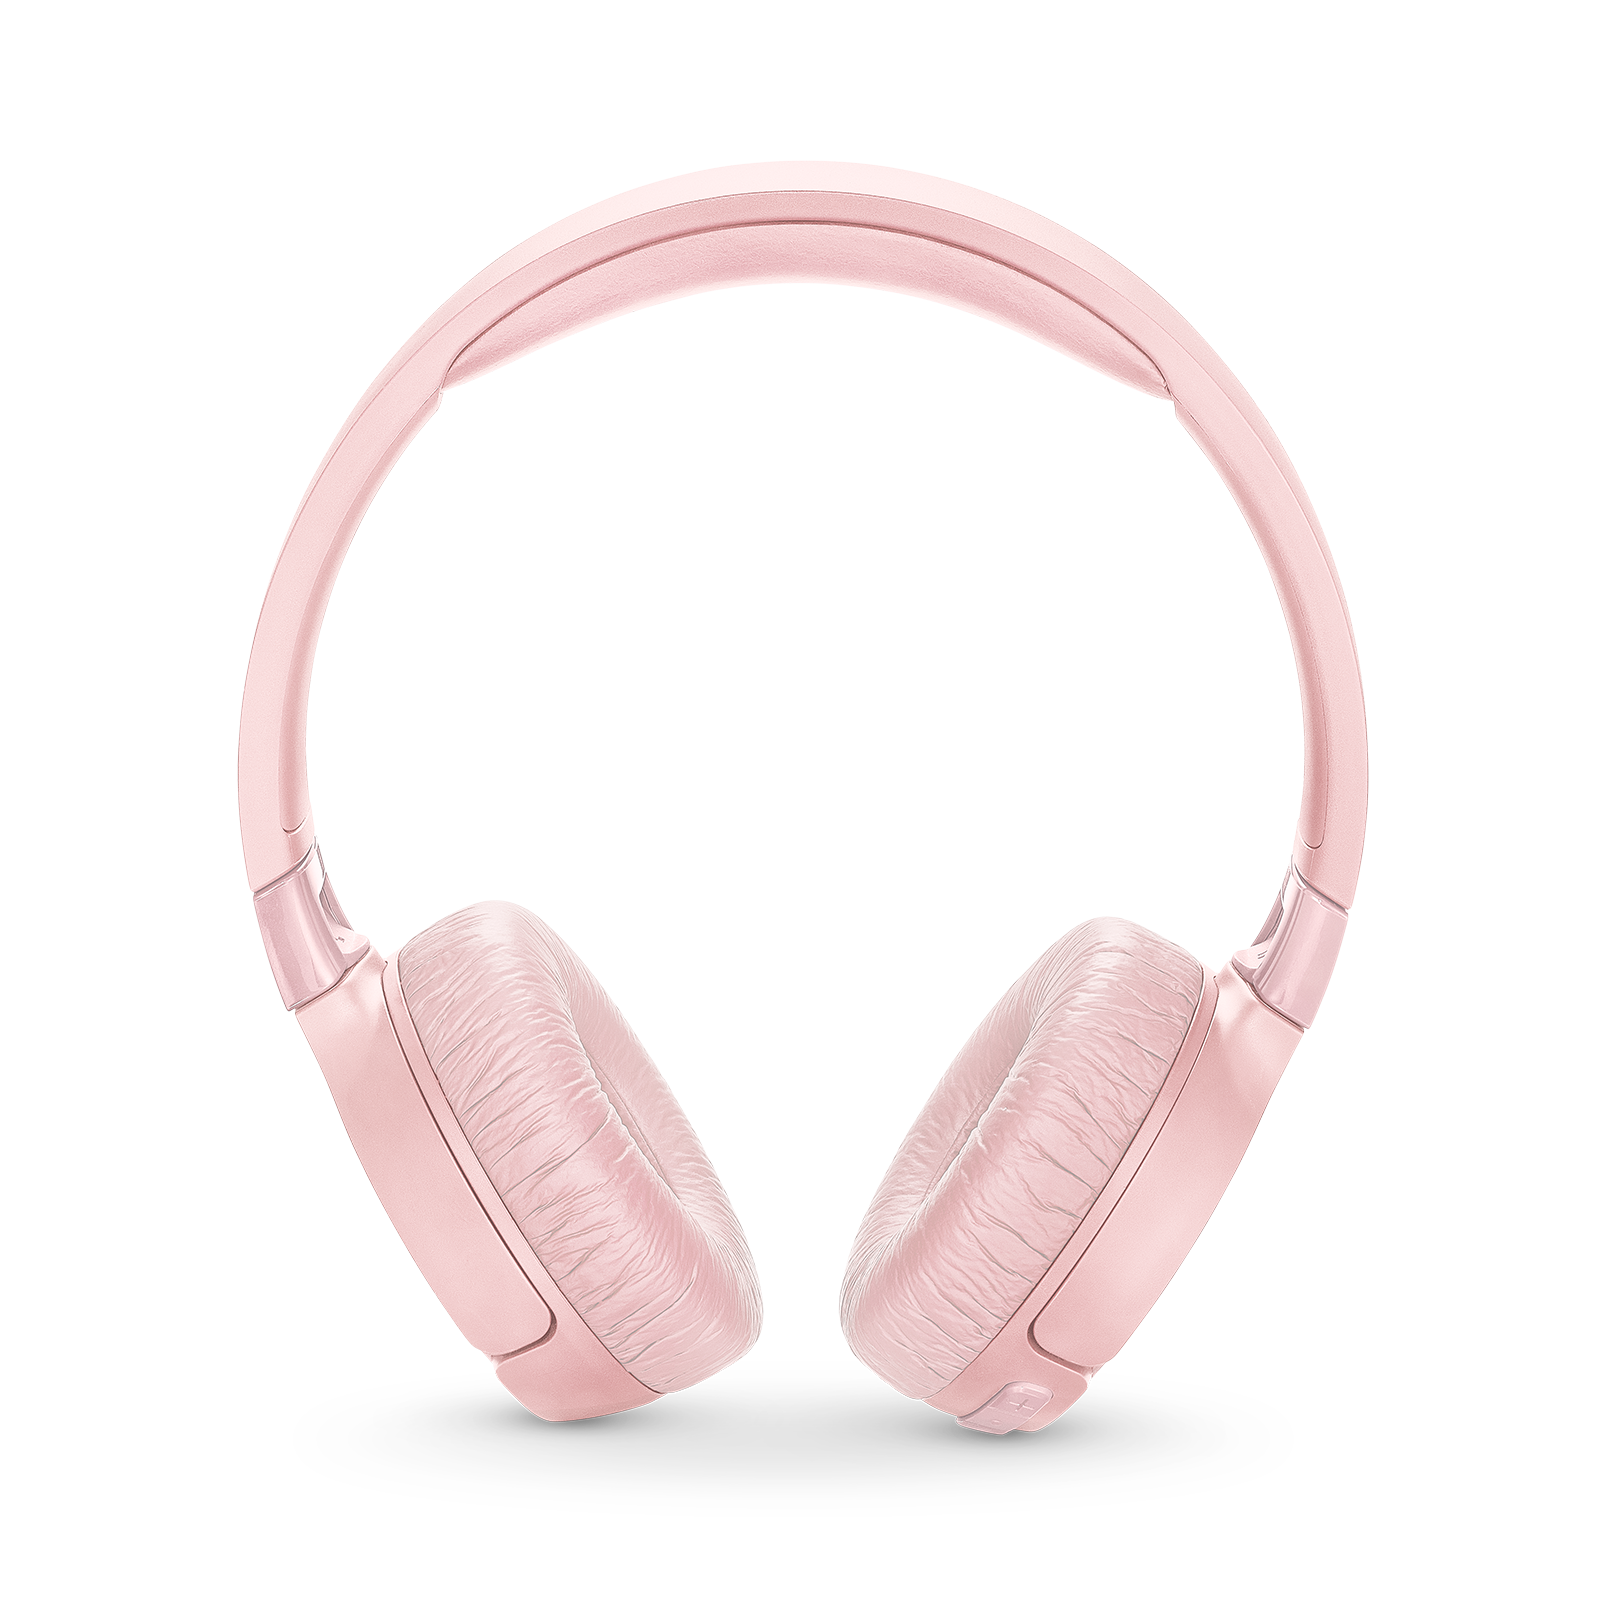 JBL TUNE 600BTNC - Pink - Wireless, on-ear, active noise-cancelling headphones. - Front